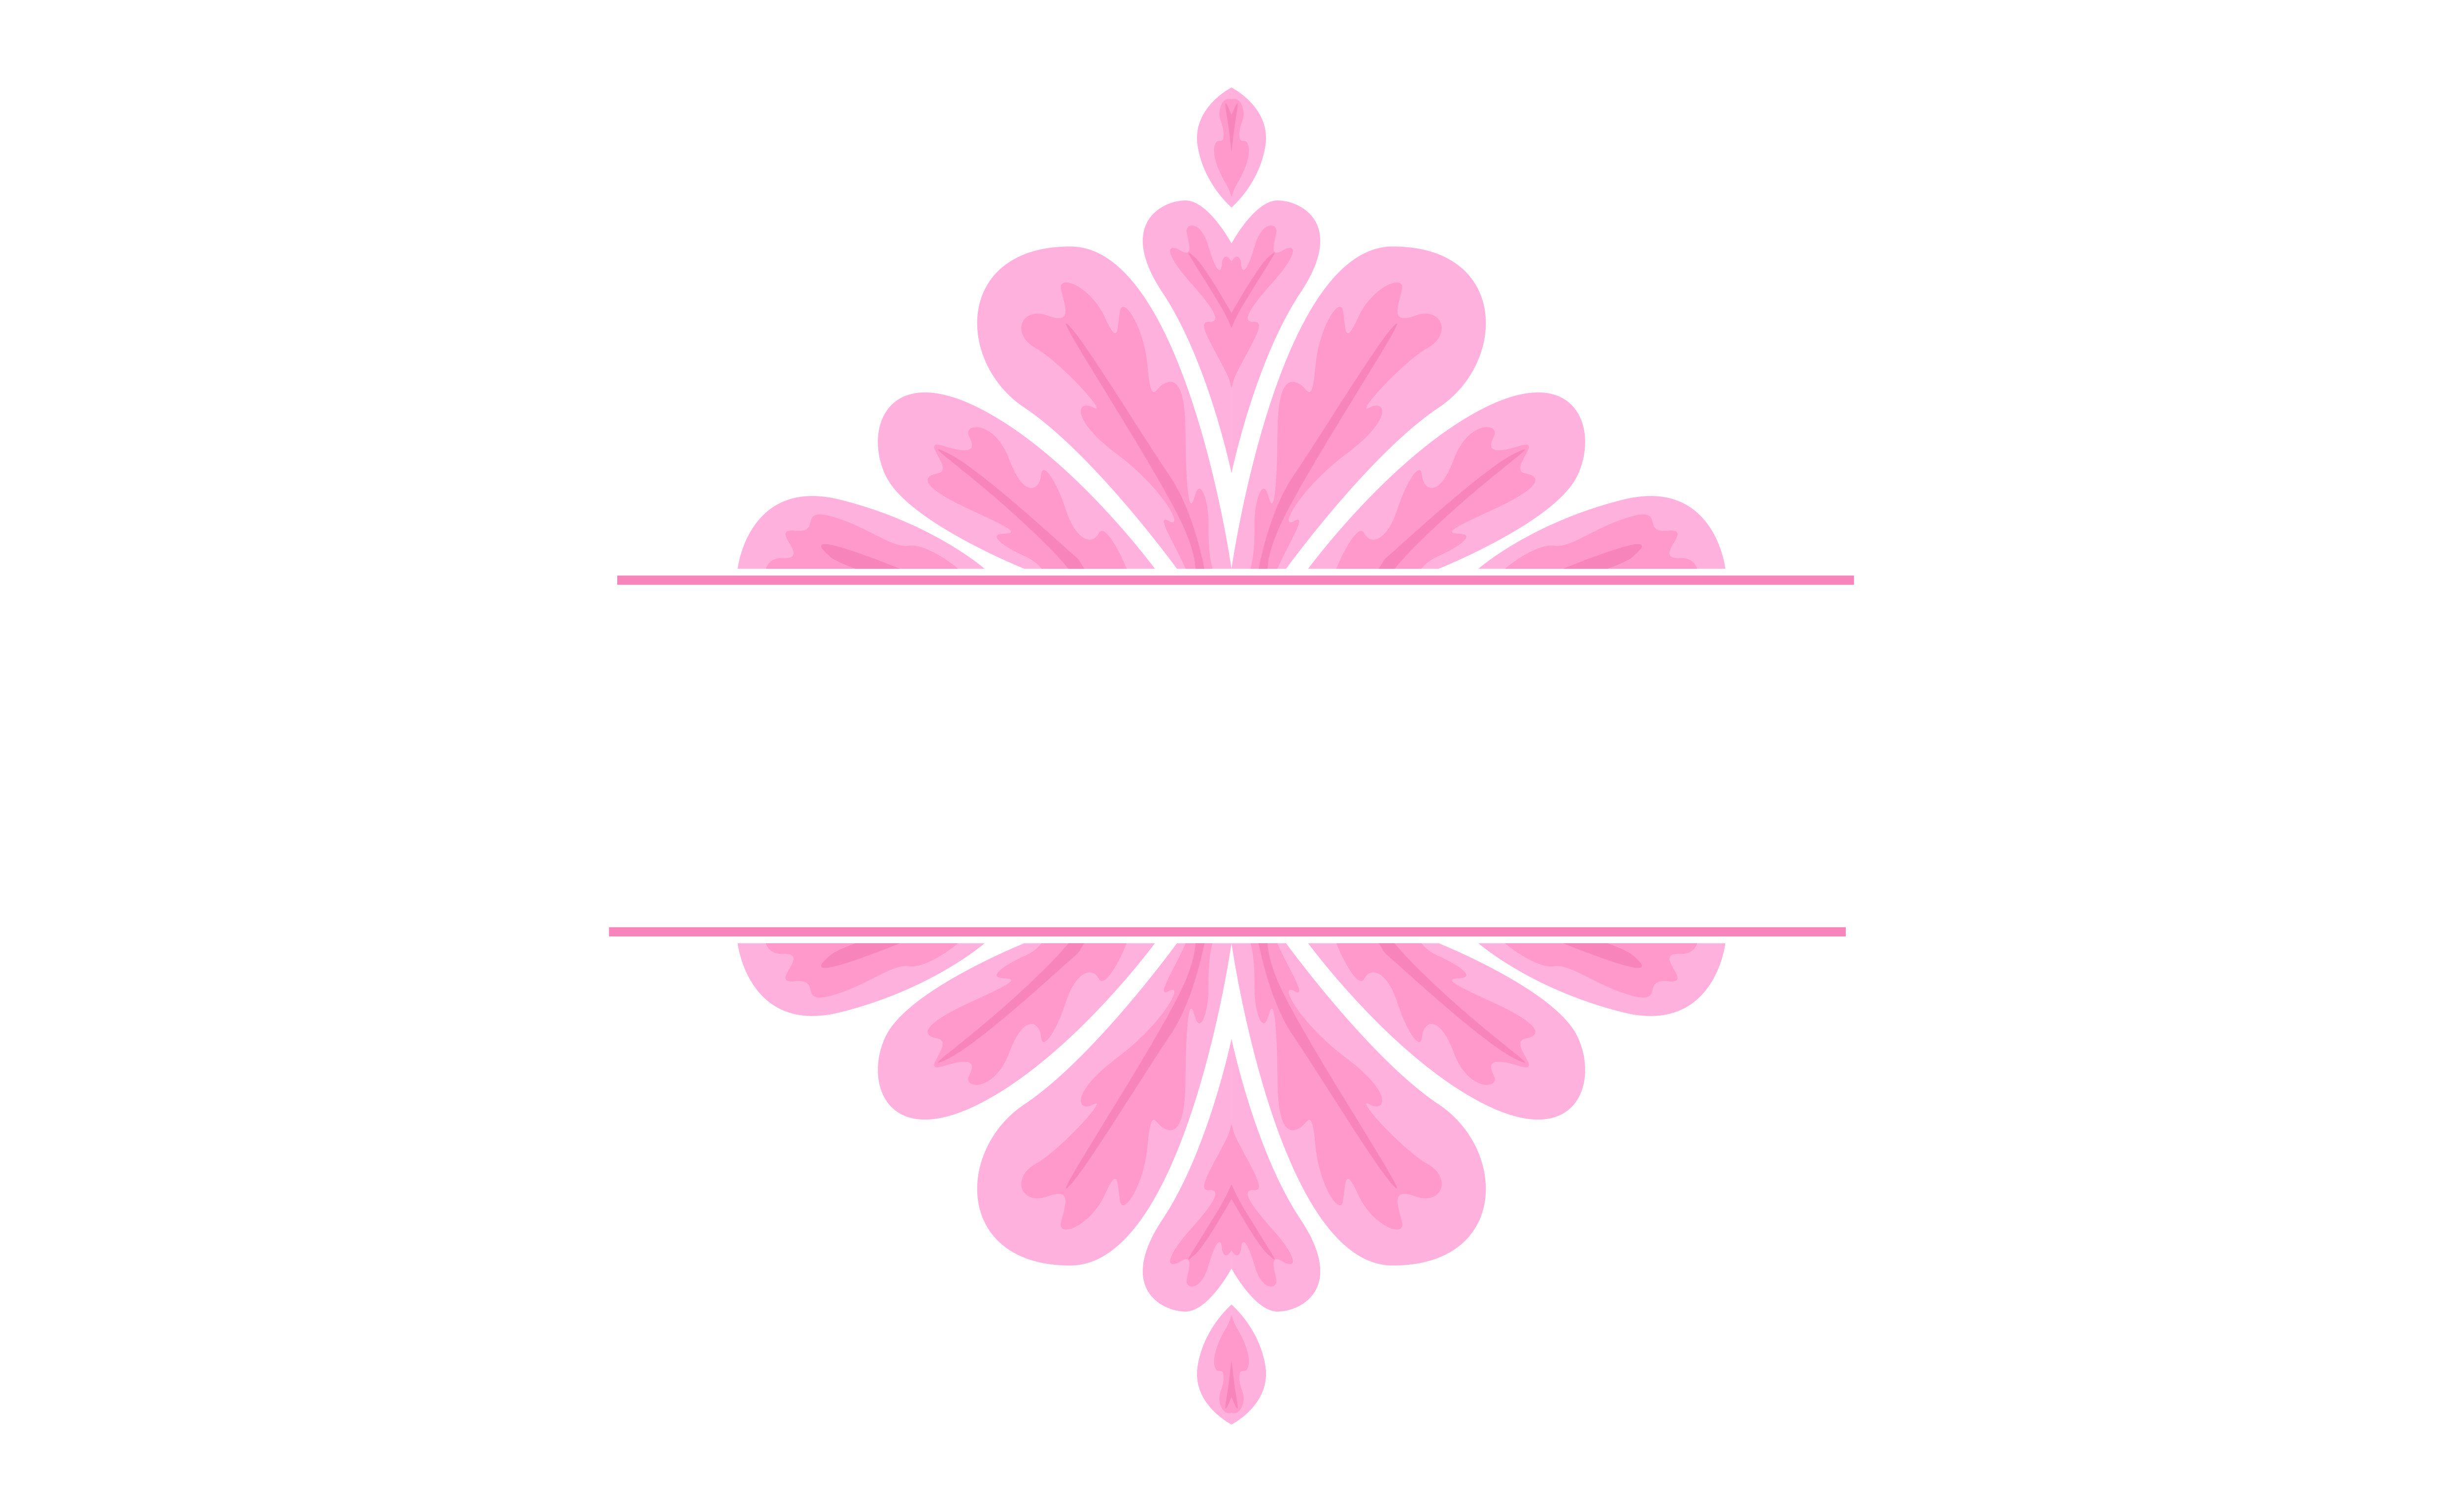 Download Free Pink Ornament Border Design Graphic By Arief Sapta Adjie for Cricut Explore, Silhouette and other cutting machines.